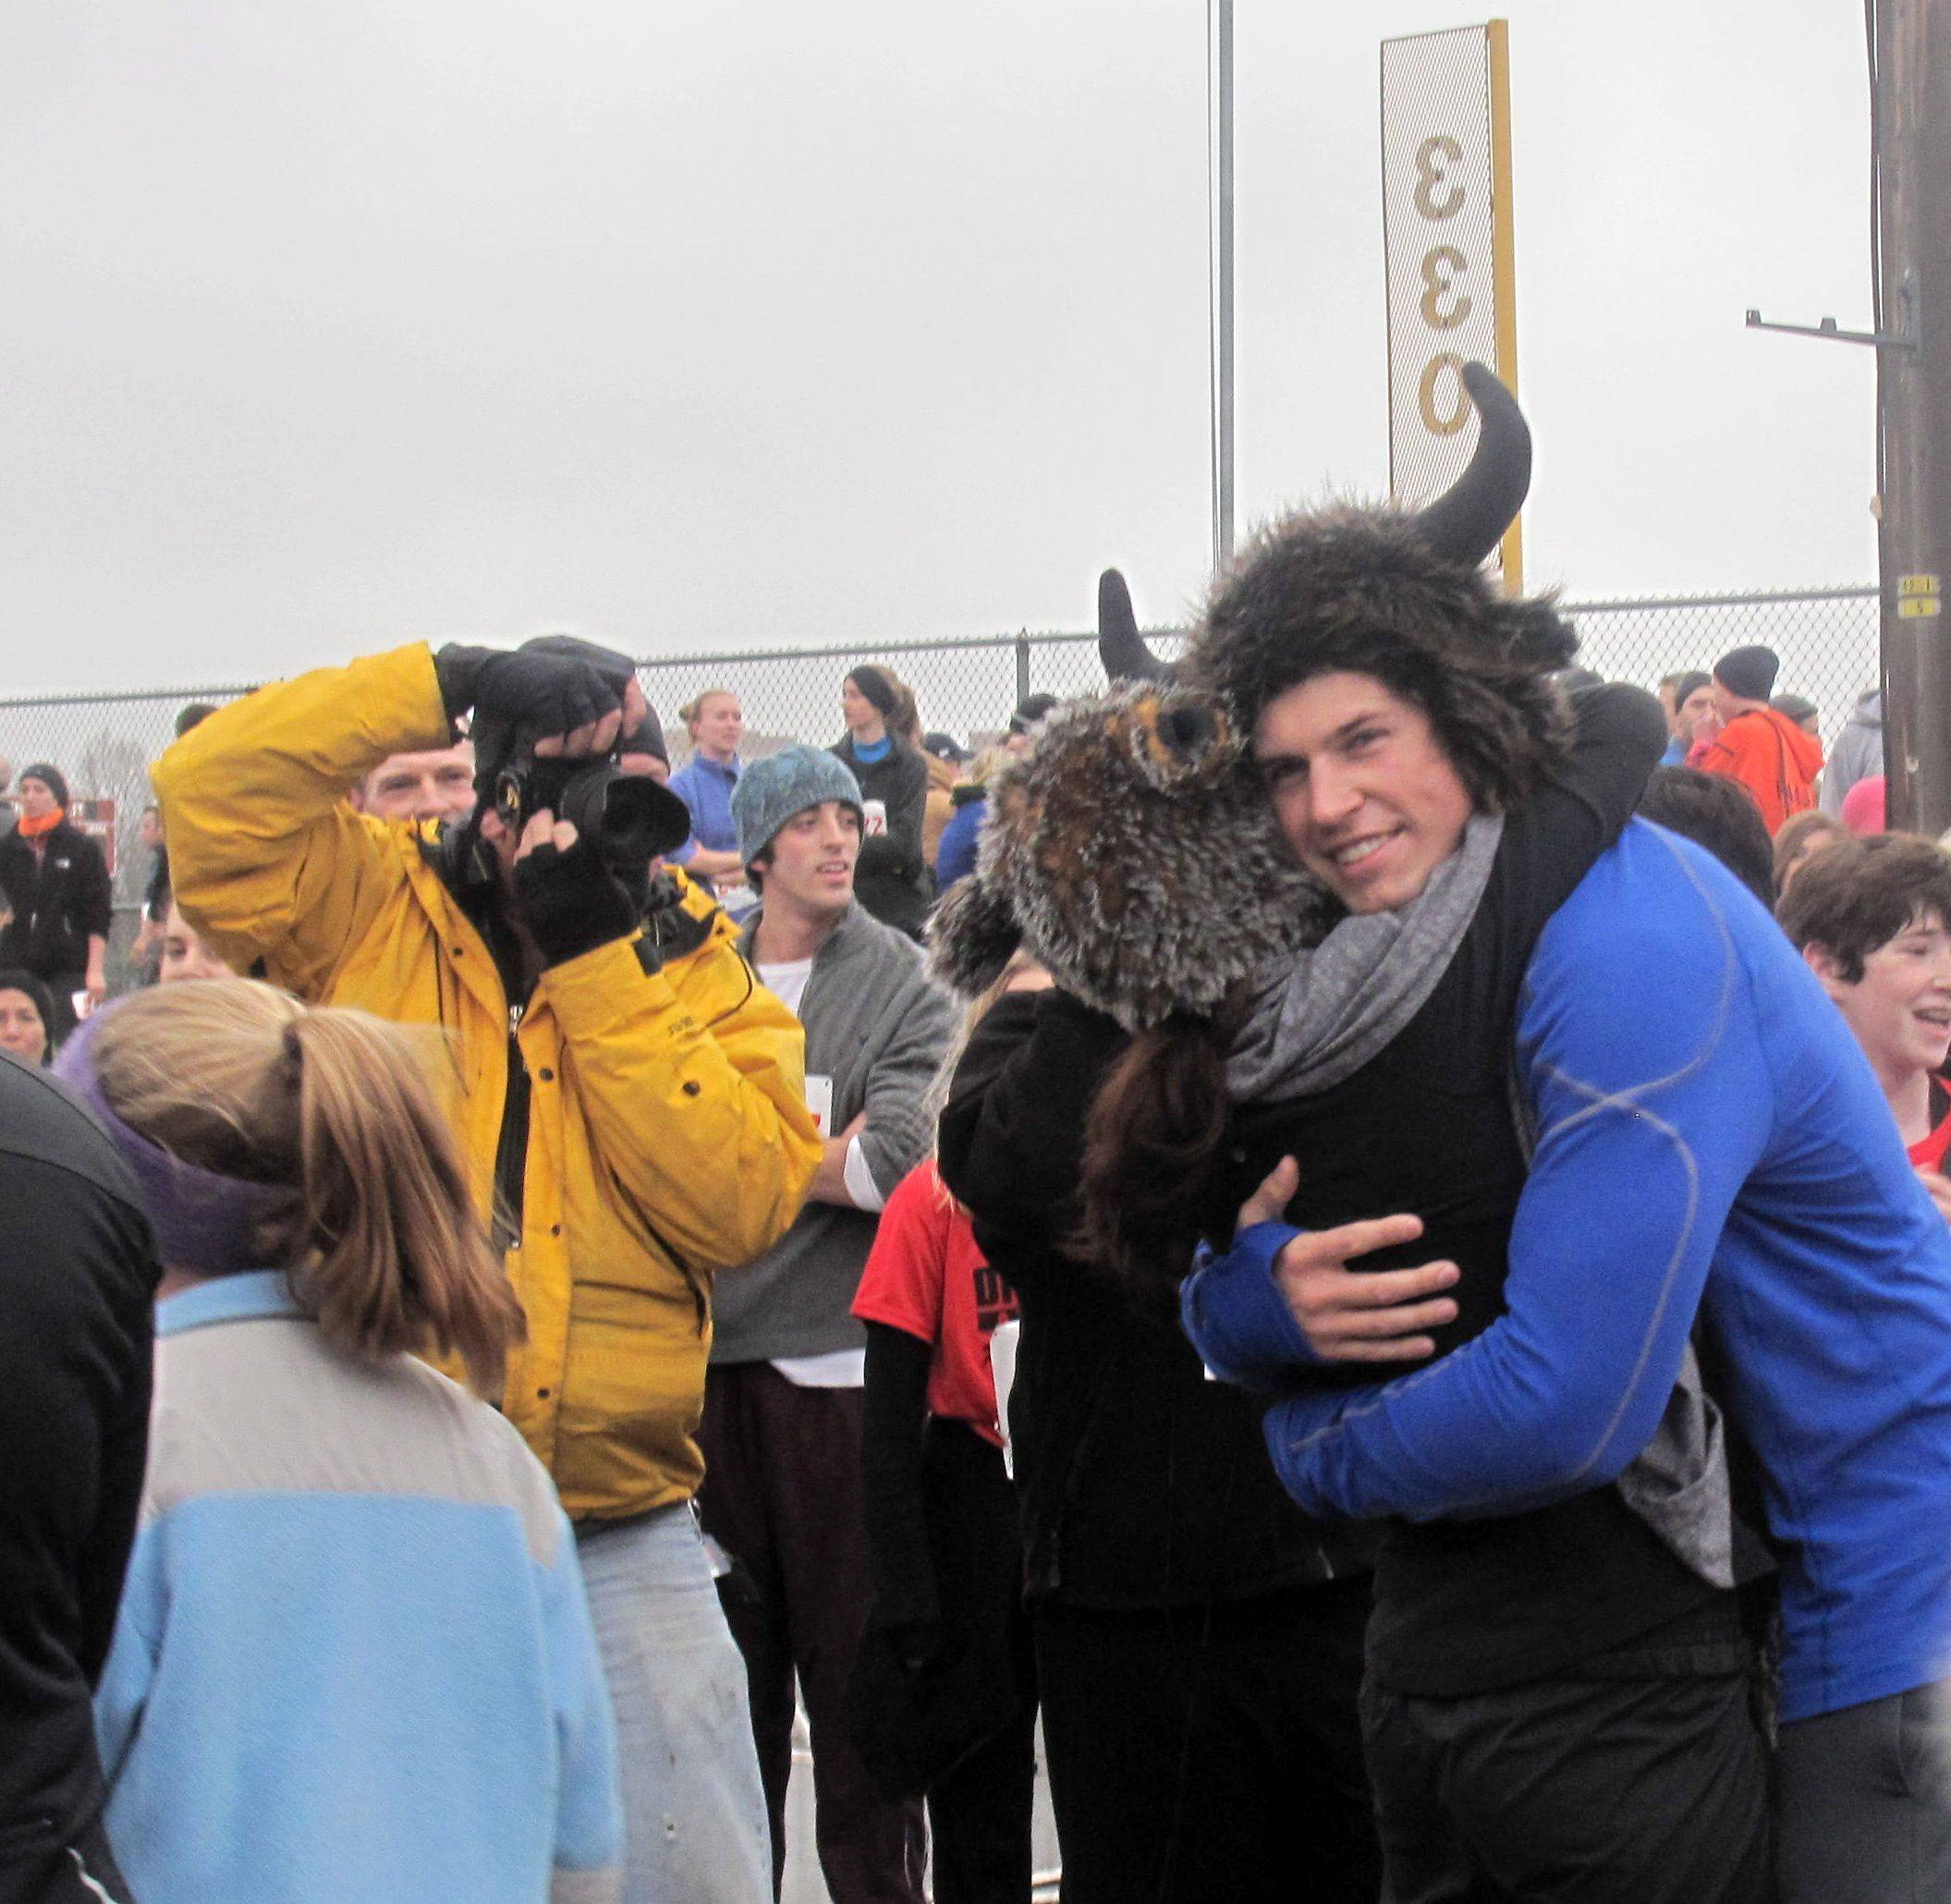 Warrenville resident Colton Antos hugs his fiancee, Brittany Acosta, after she accepted a marriage proposal after Thursday's Turkey Trot 5K run in Naperville. The couple was also celebrating their seventh anniversary